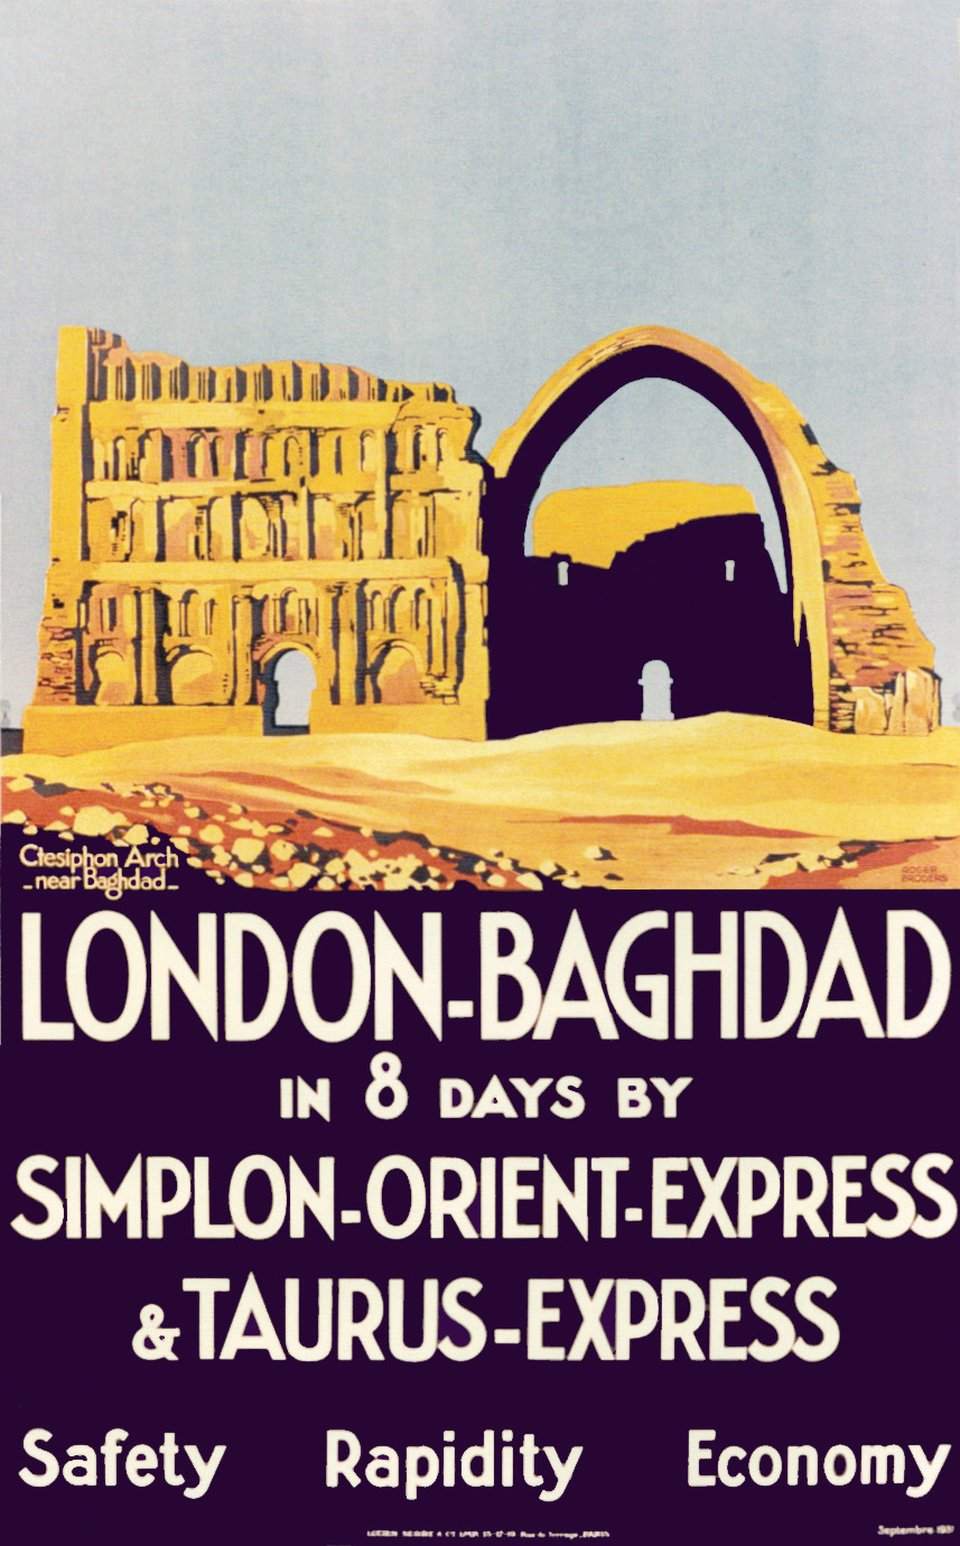 London - Baghdad in 8 days by Simplon Orient Express & Taurus Express, Safety Rapidity Economy – Affiche ancienne – Roger BRODERS – 1931